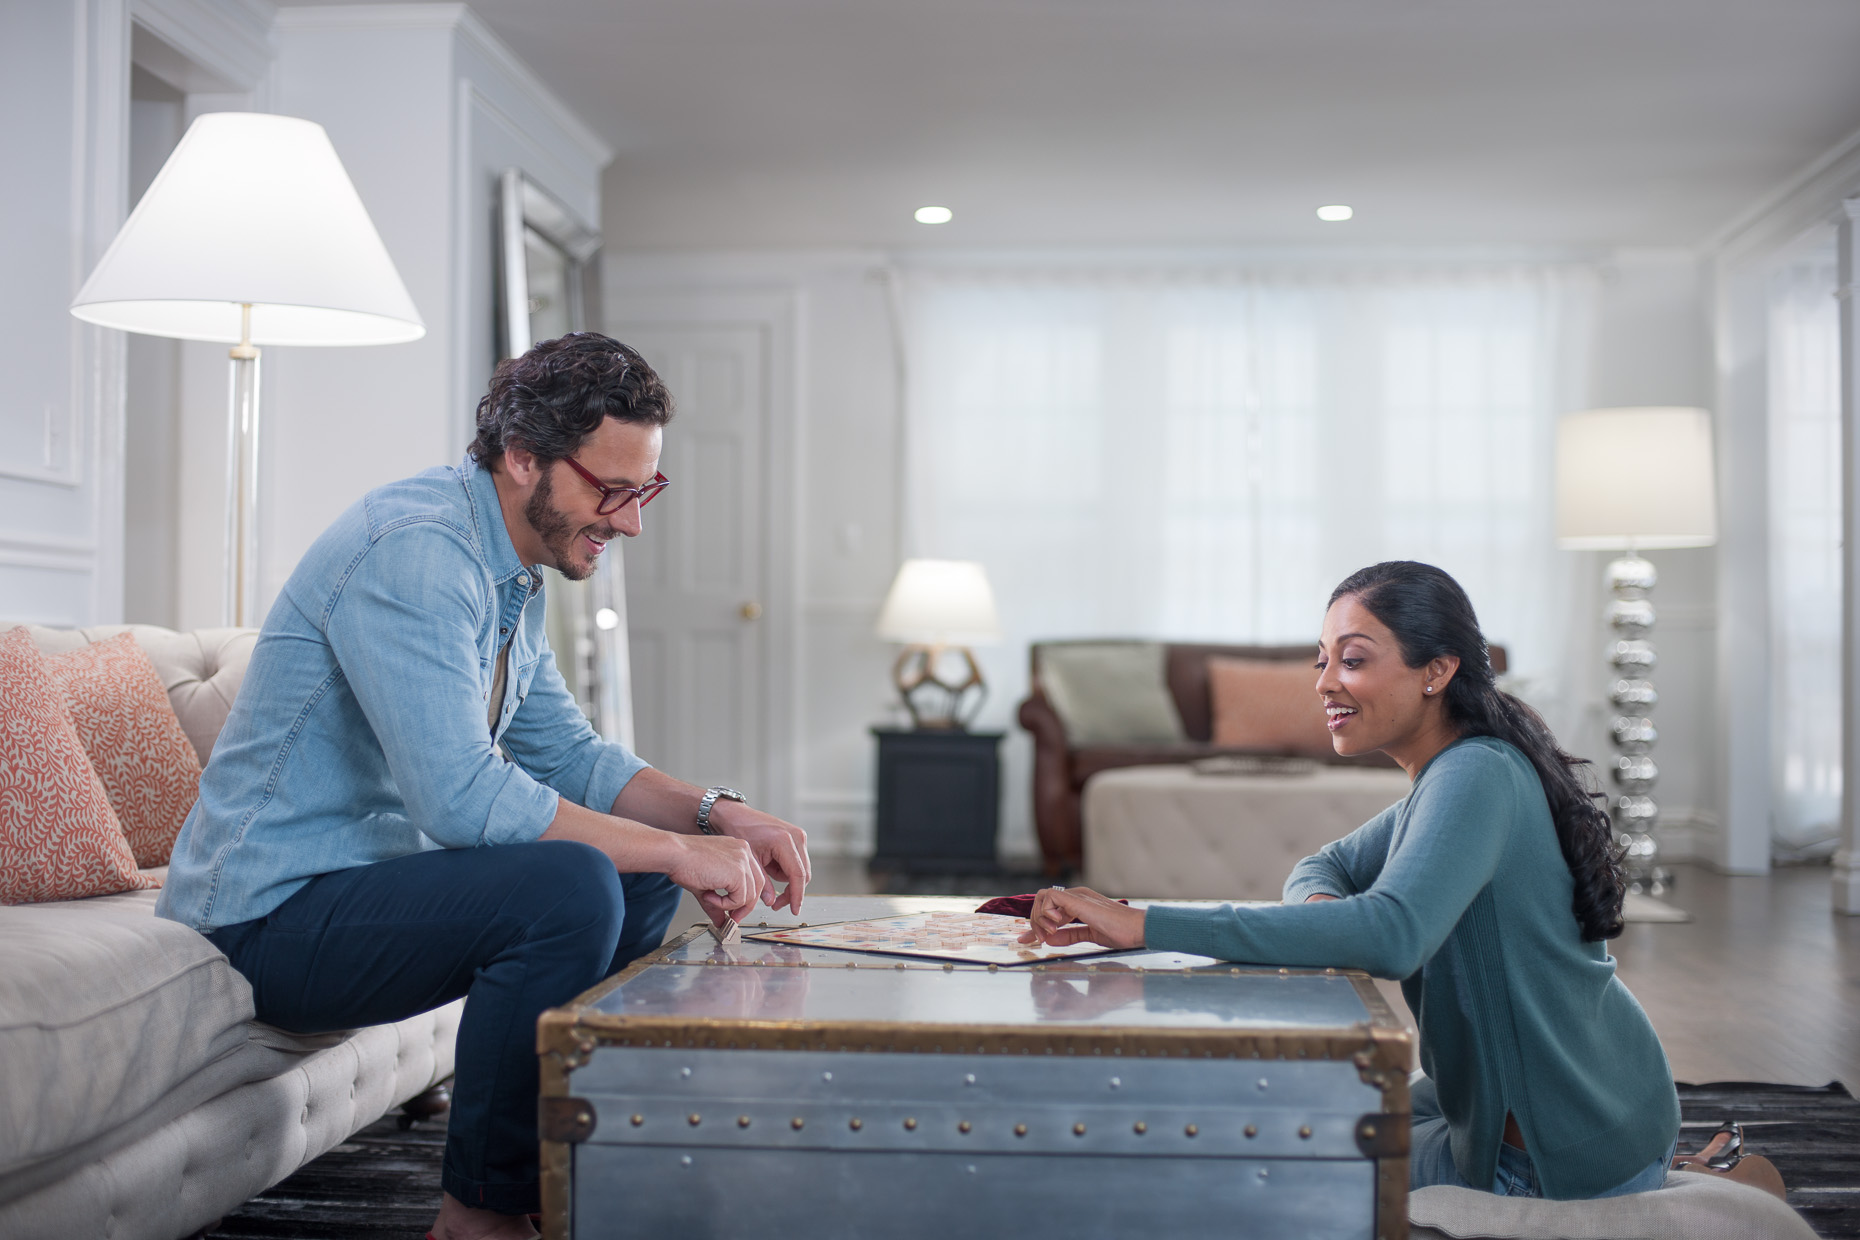 Scrabble Couple |  Philips LED Commercial Campaign